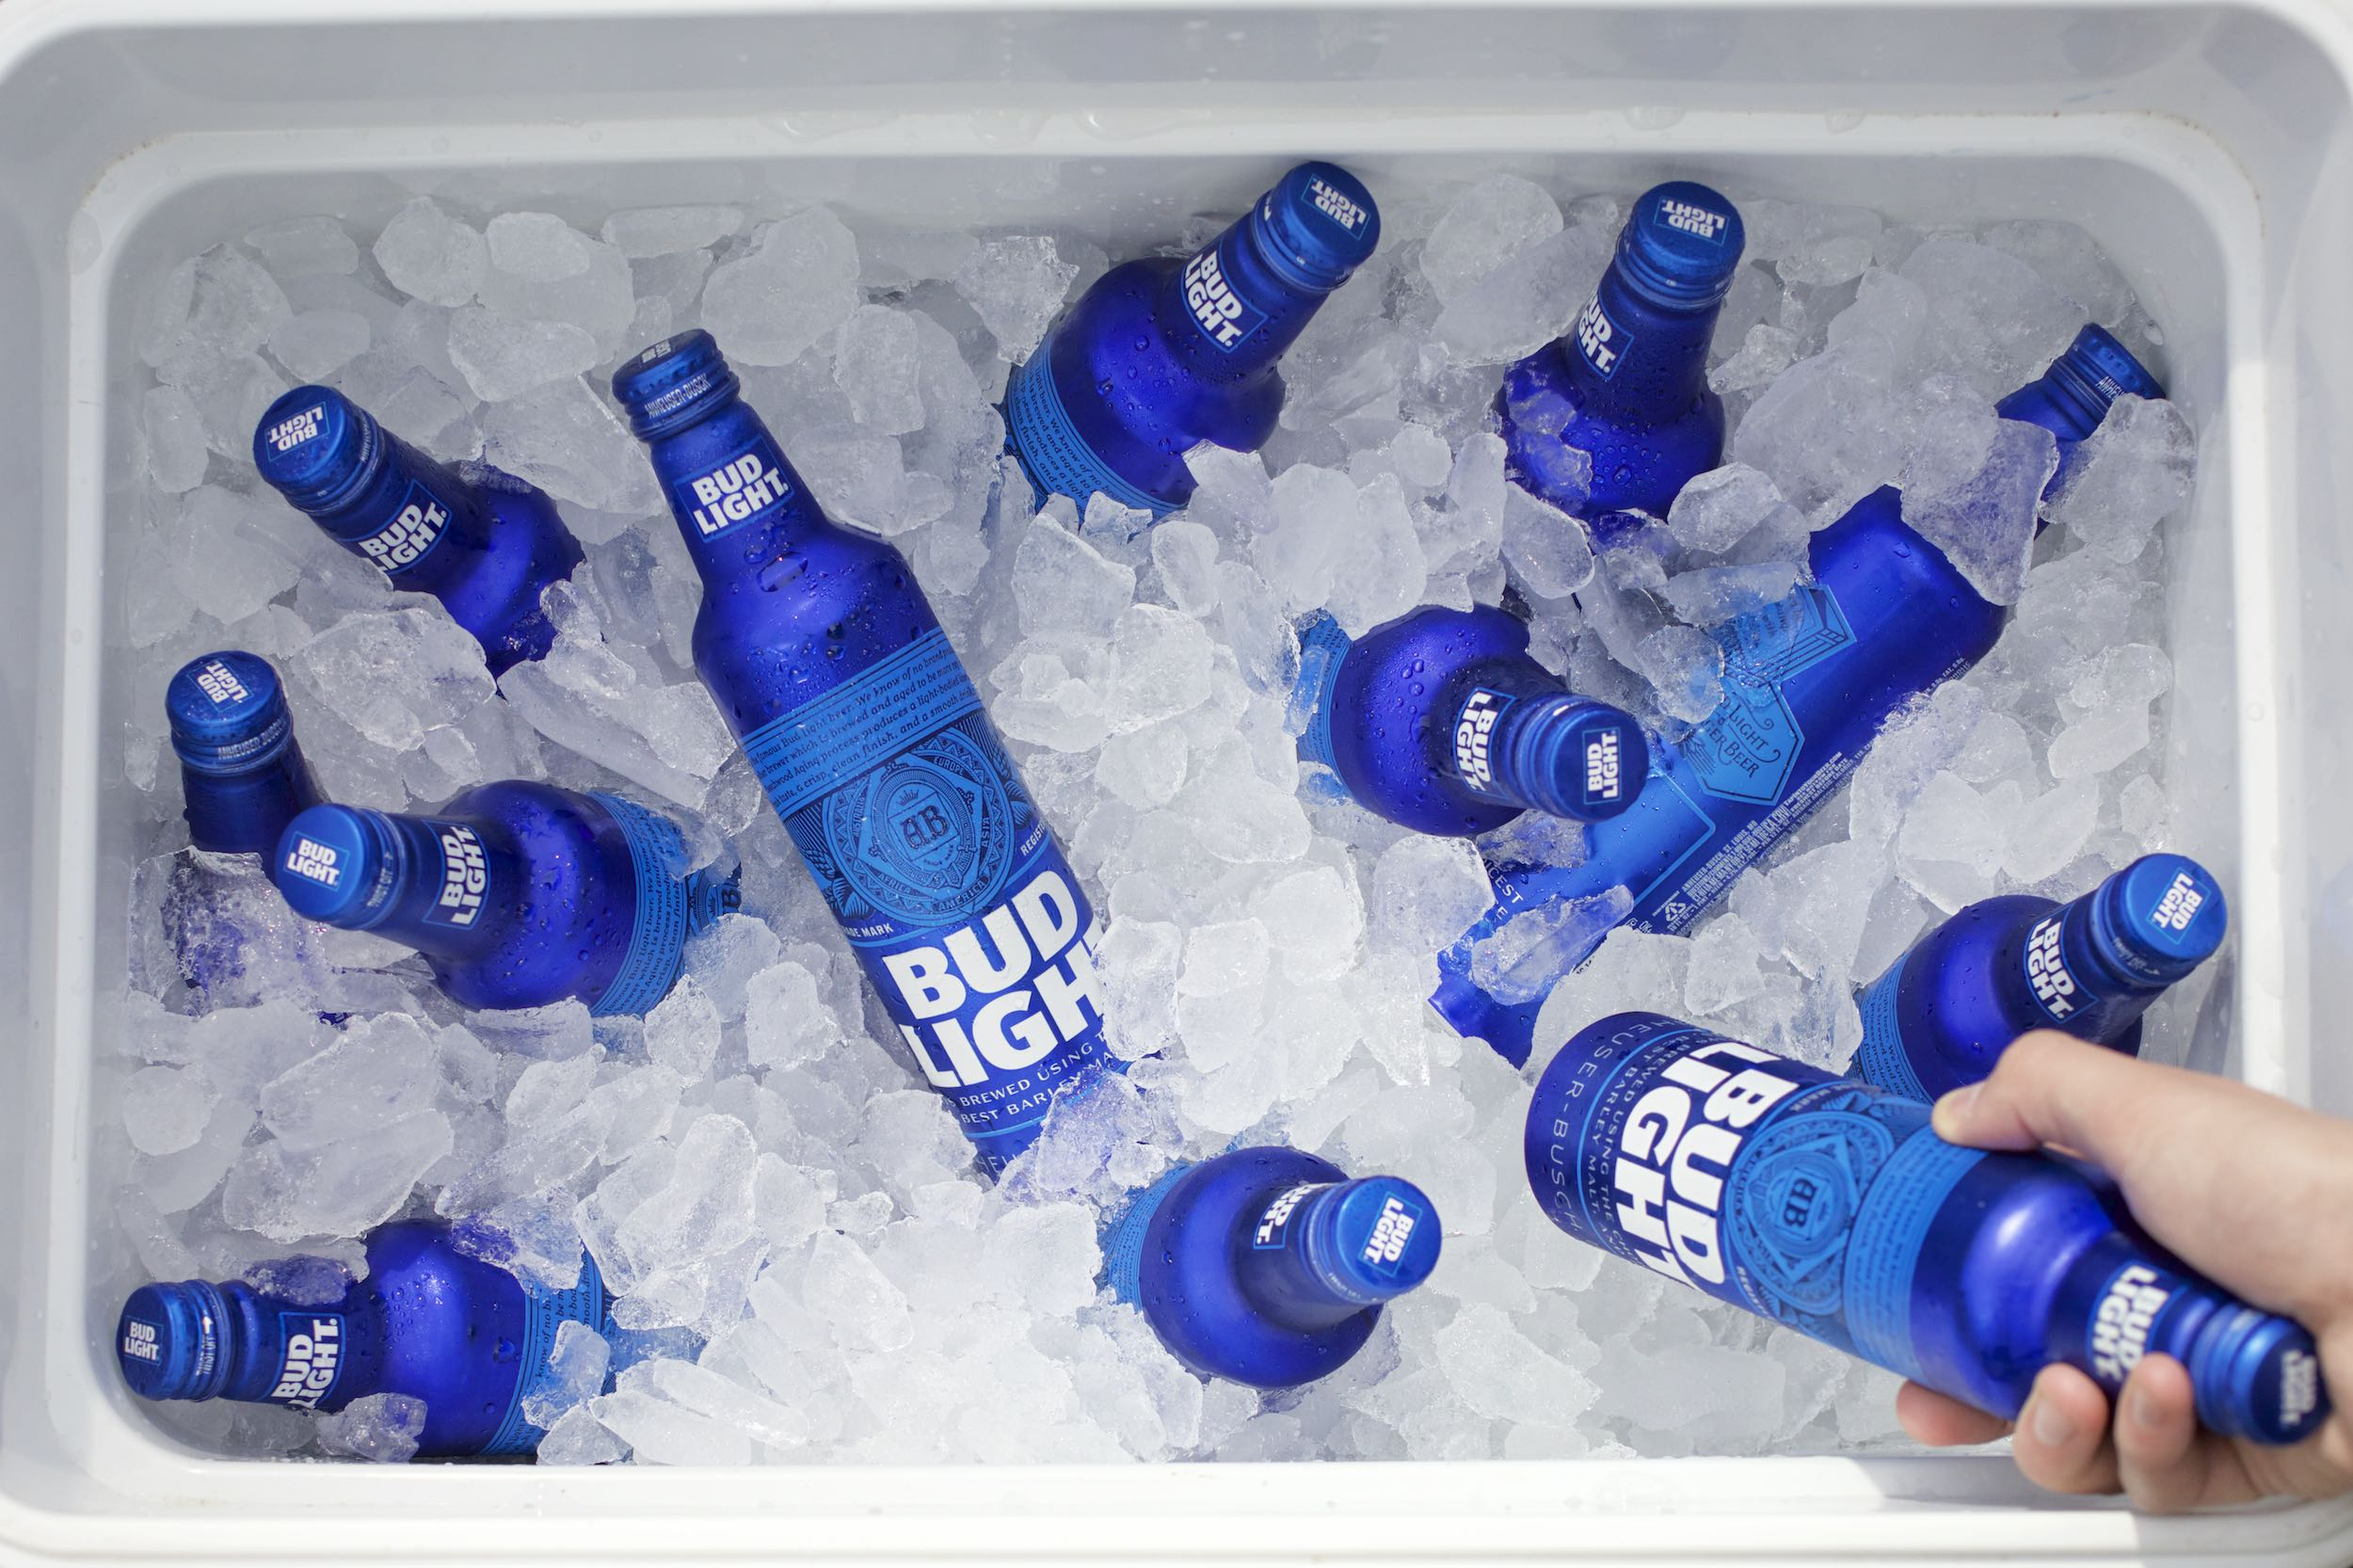 Jody Horton Photography - Cooler of Bud Light aluminum bottles.